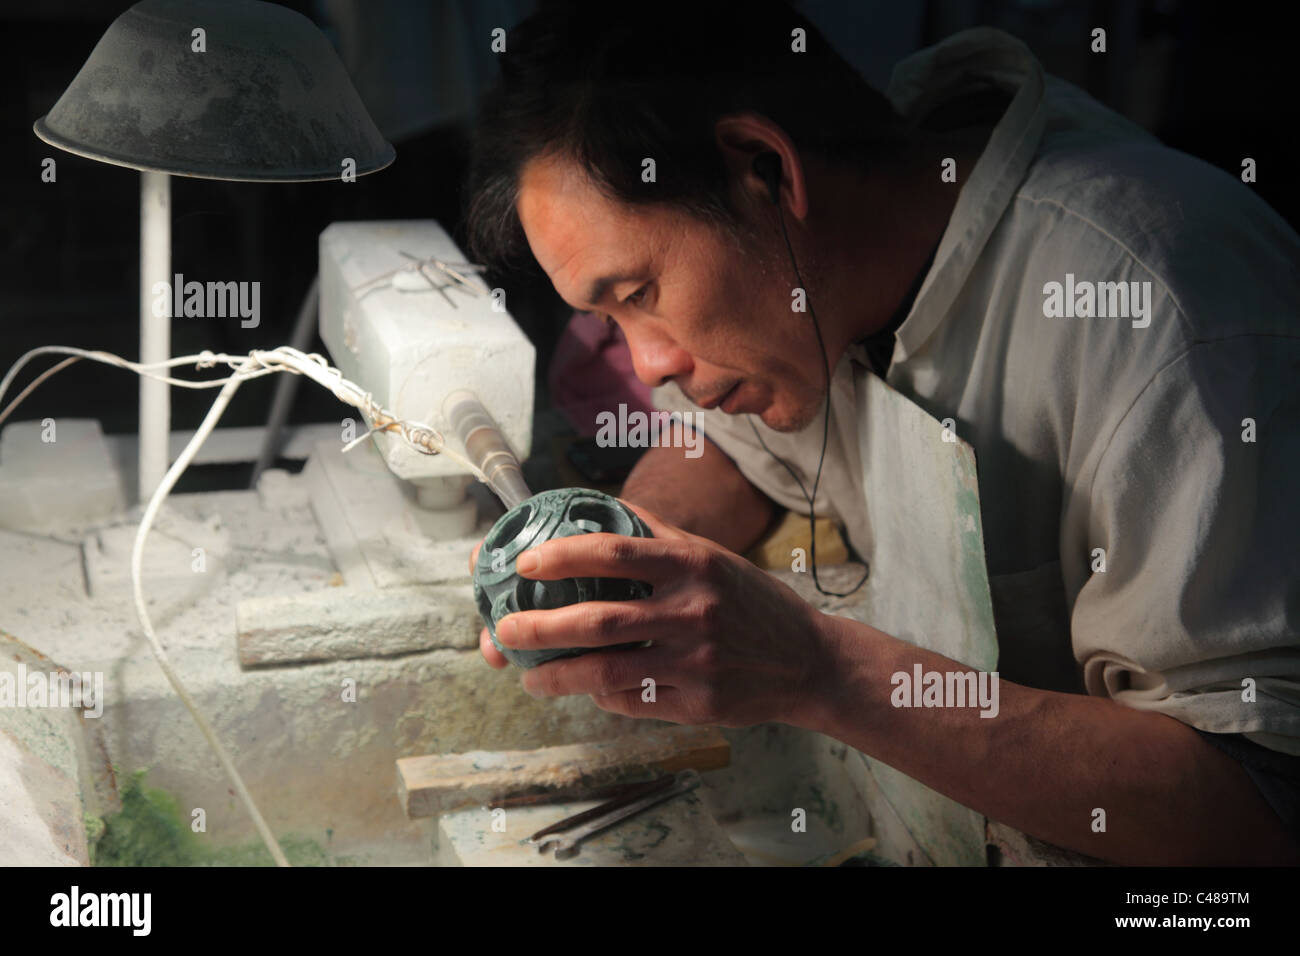 Chinese worker in factory carving jade sculpture, Beijing, China - Stock Image